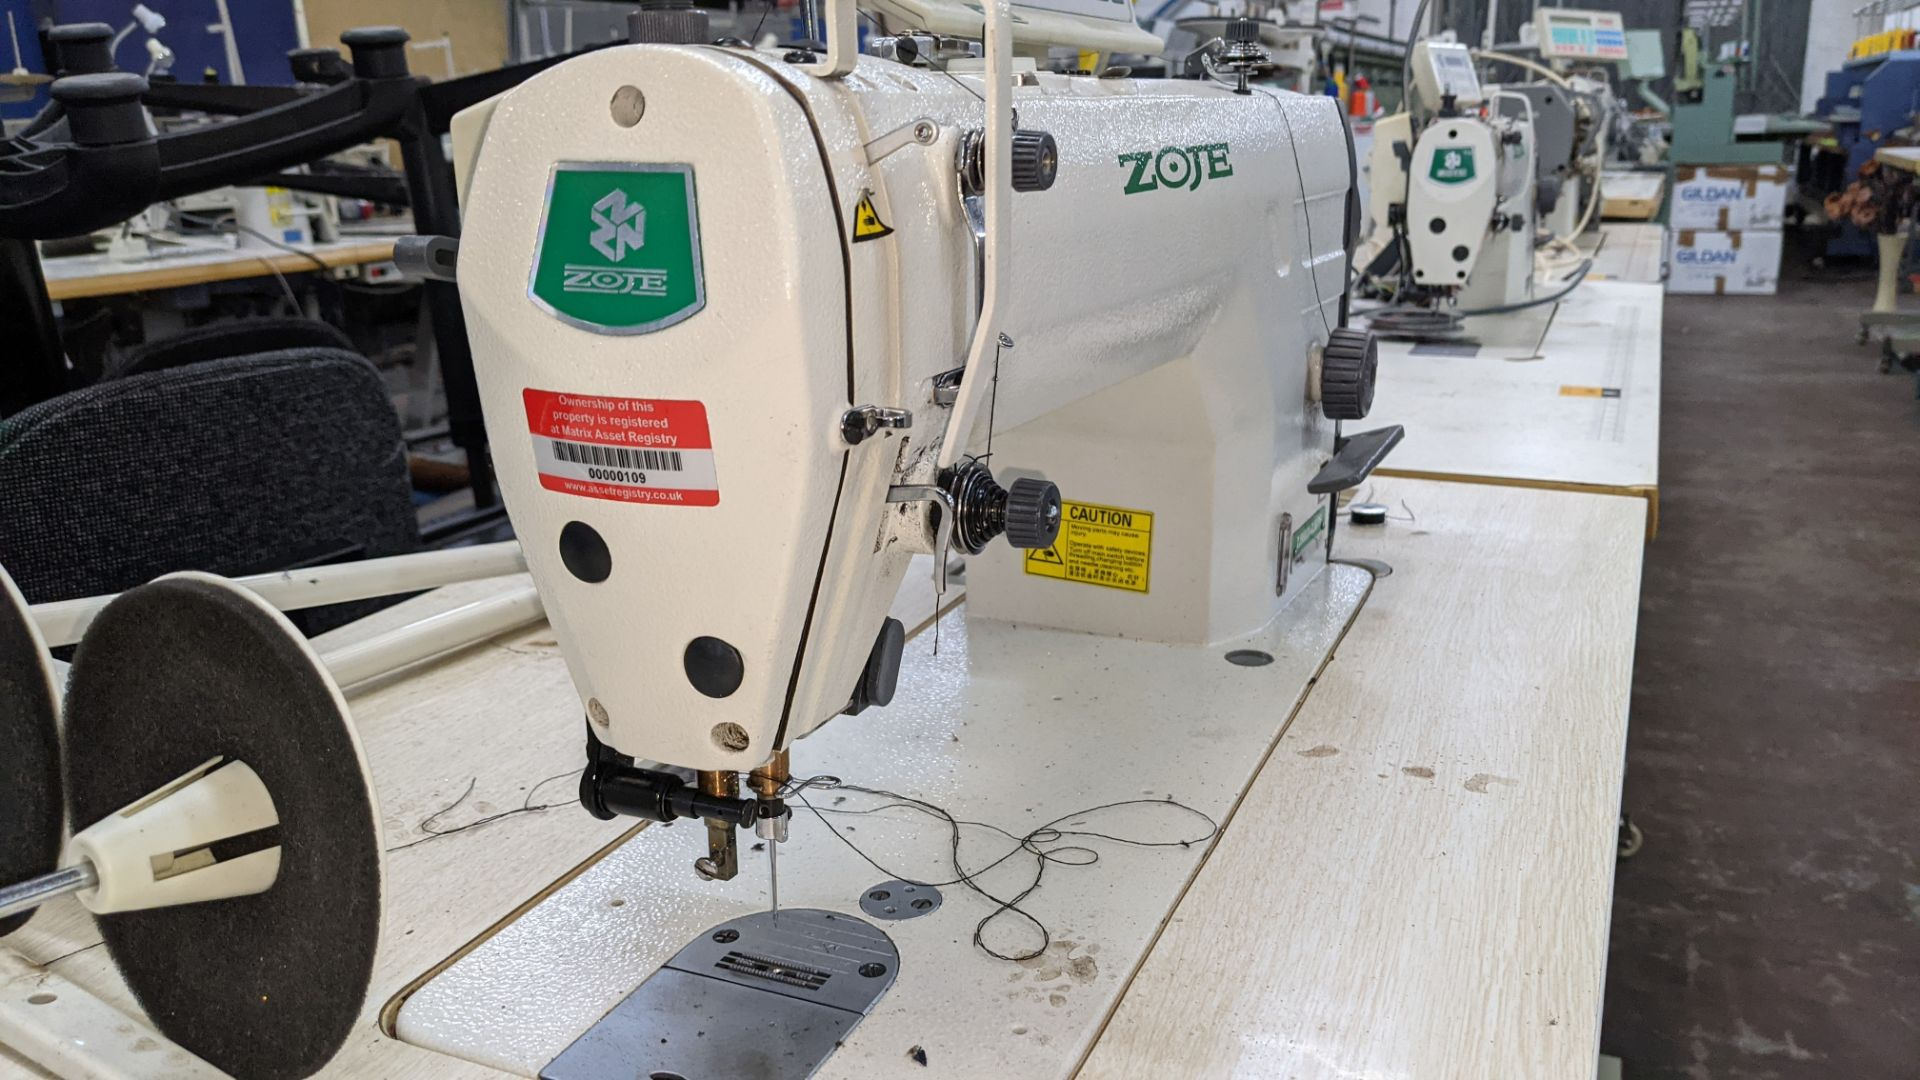 Zoje model ZJ9800A-D3B/PF sewing machine with WR-501 controller - Image 11 of 17